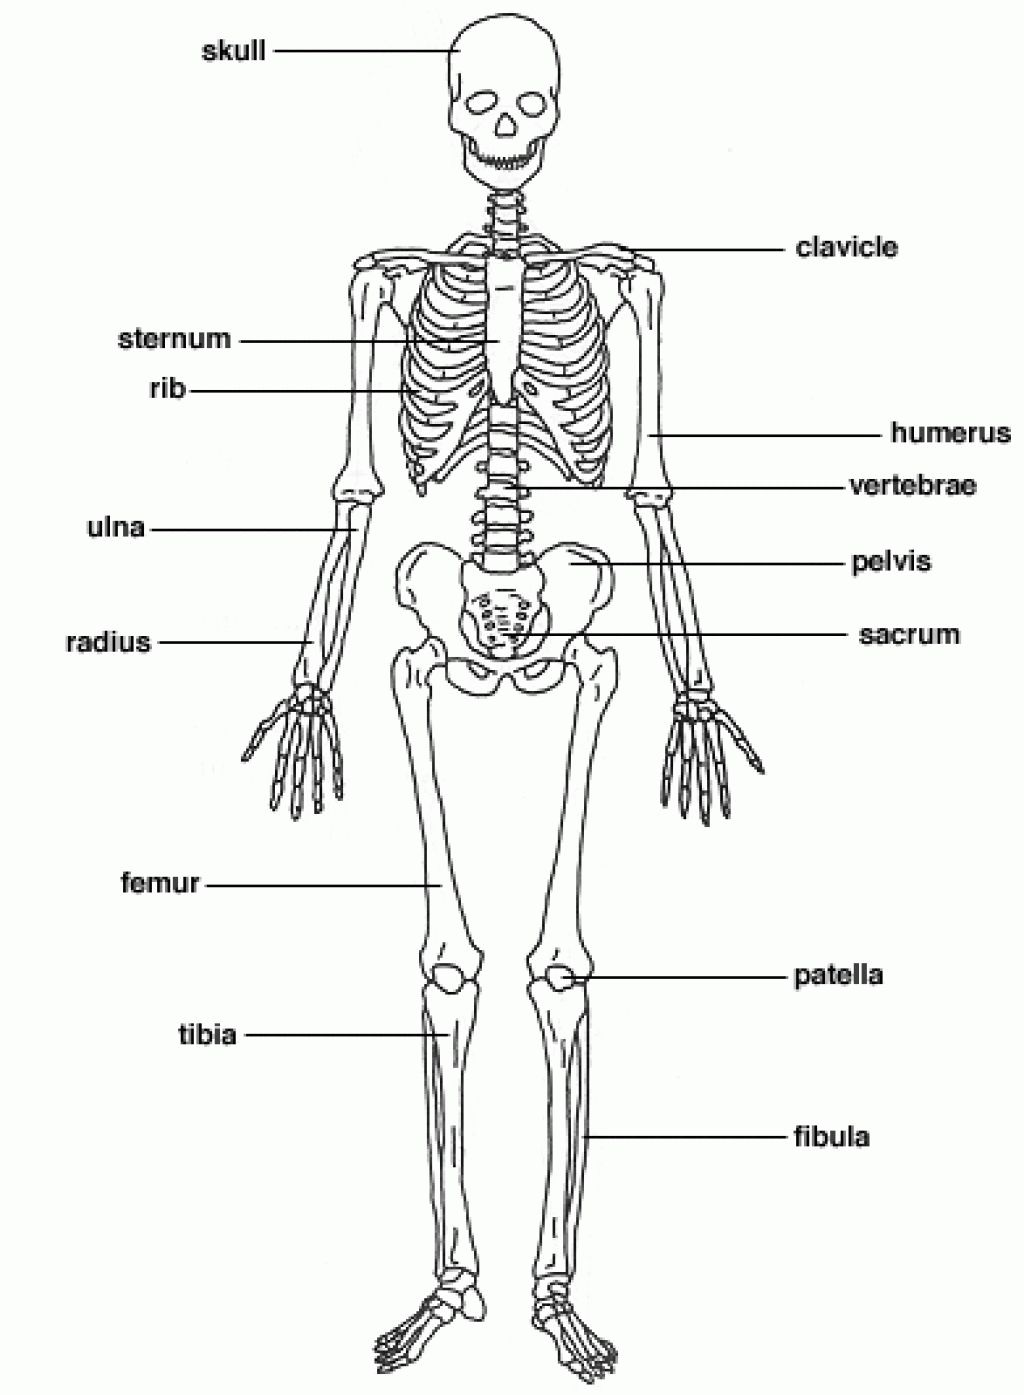 The Skeletal System Diagram Labeled